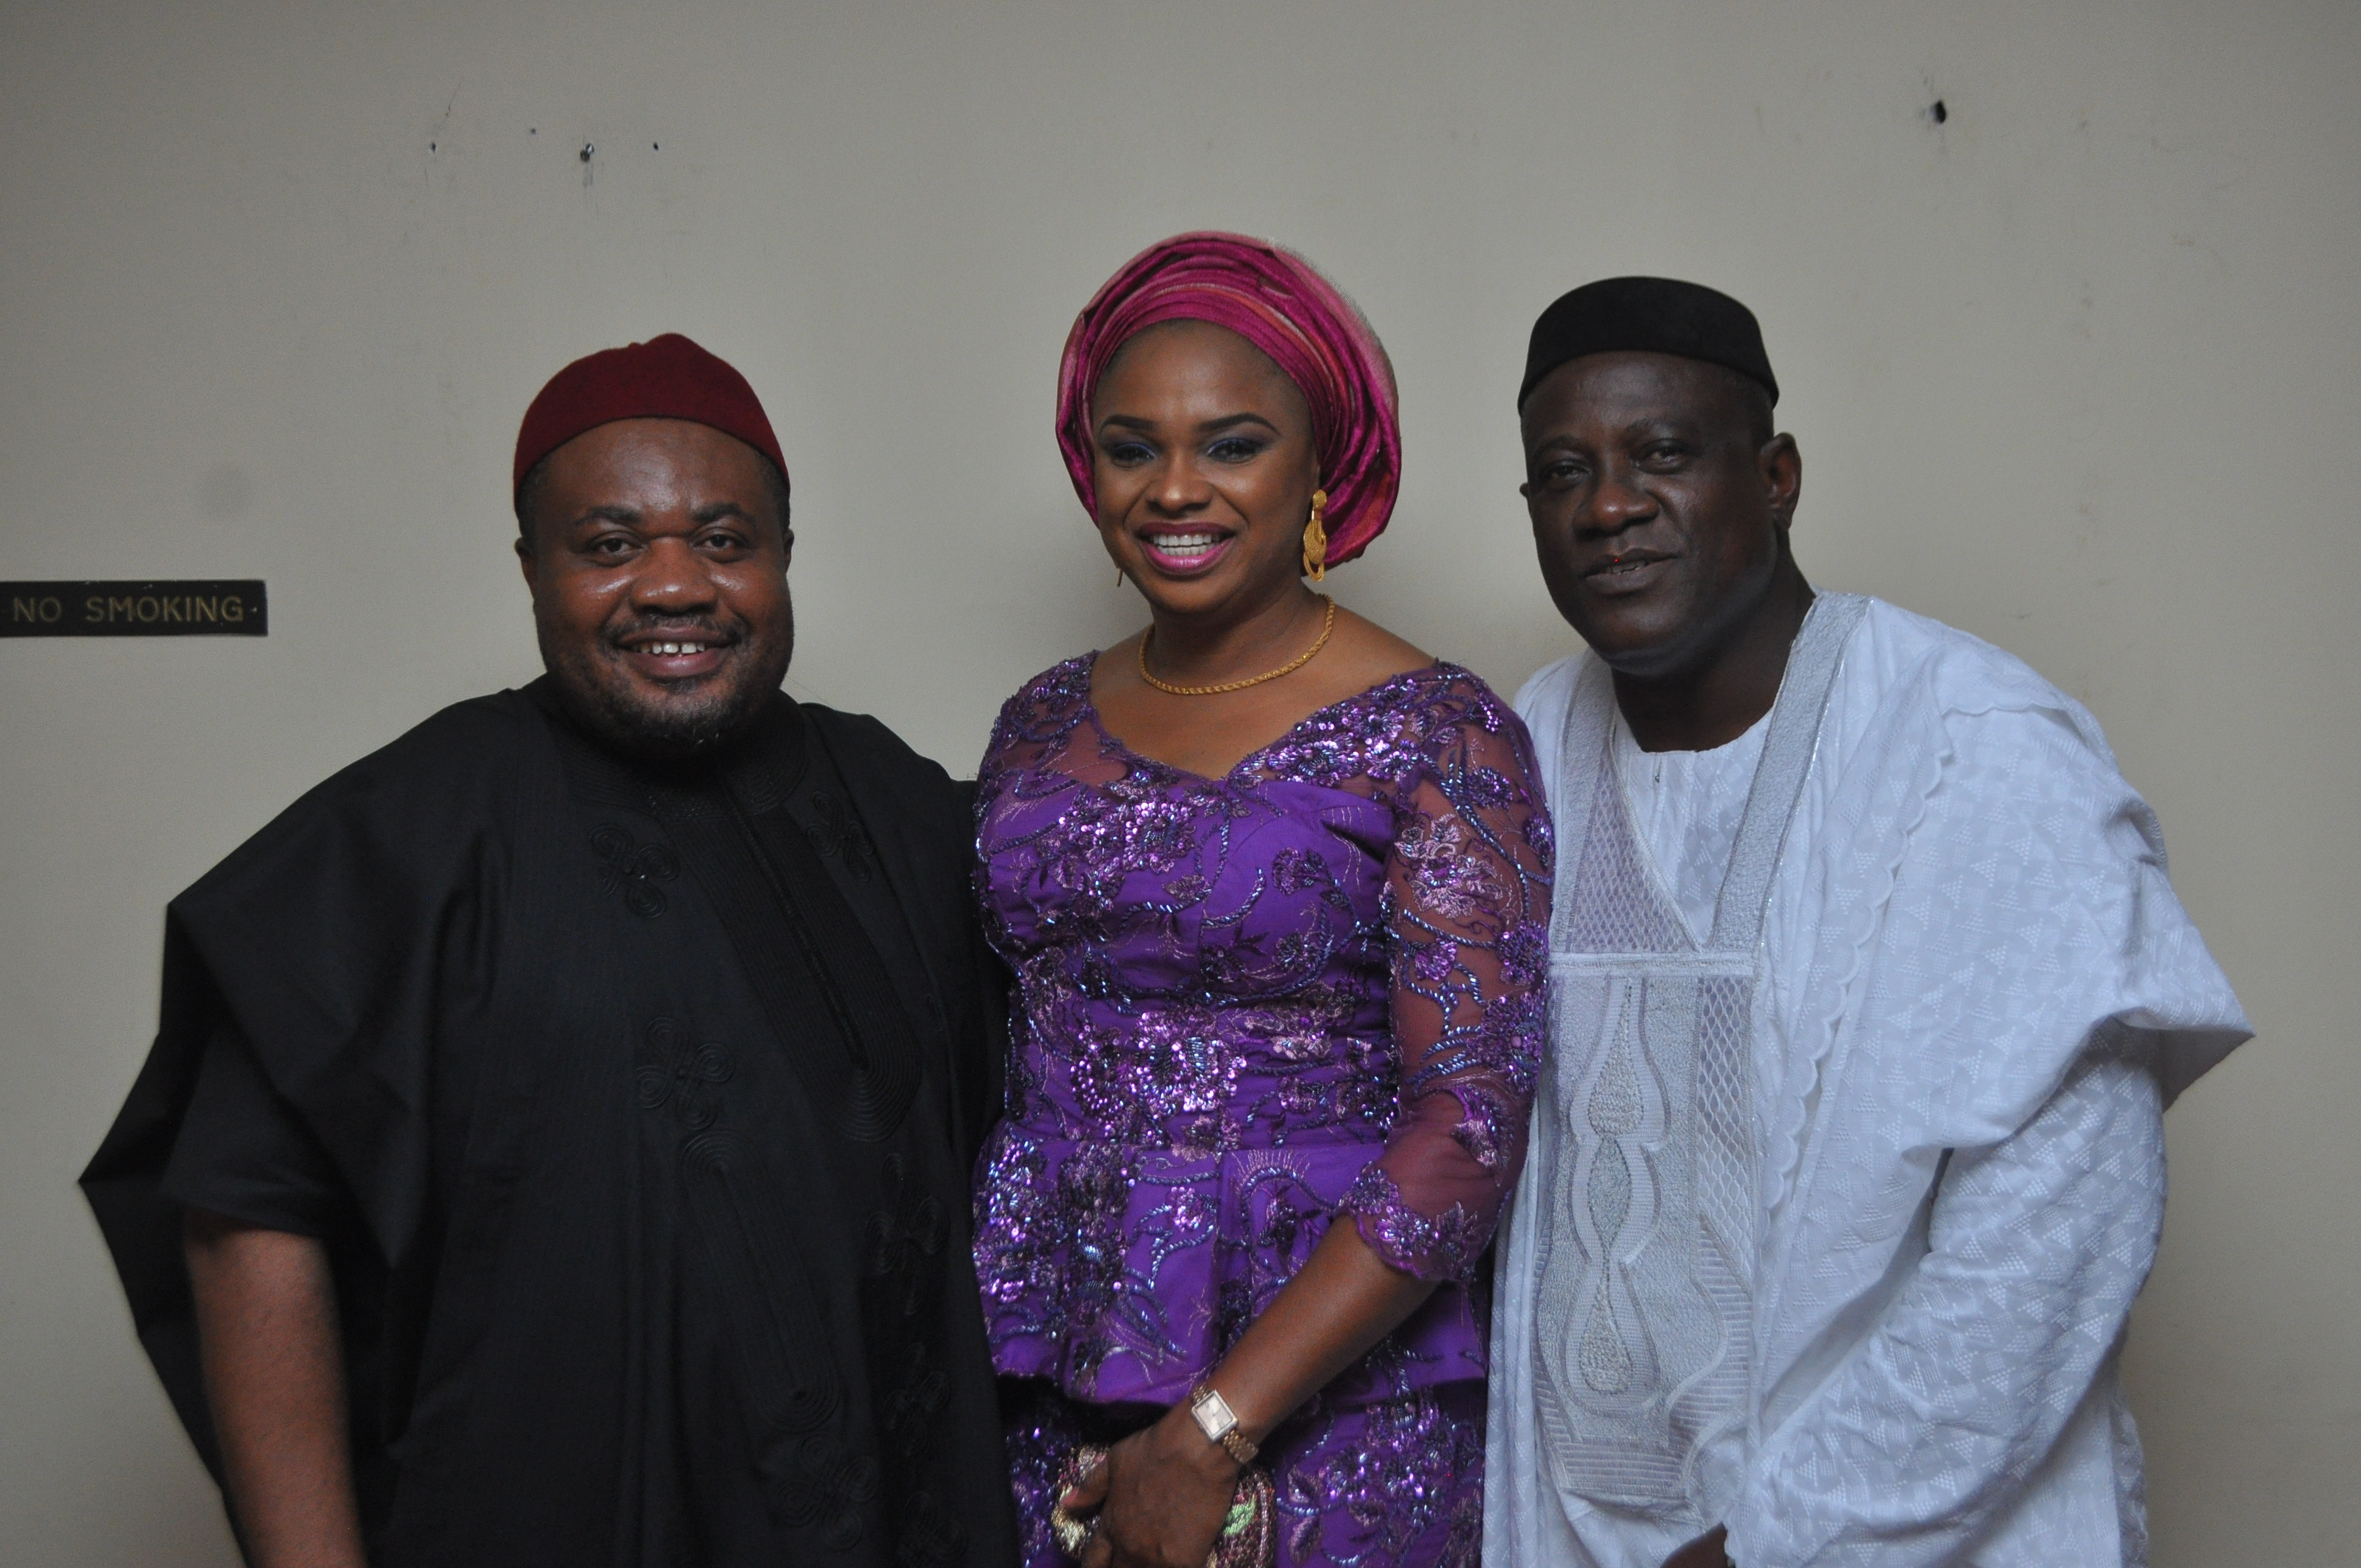 L-R Mr. Anthony Nwaochei, Major Osamgbi and her husband Mr. Isichie Osamgbi